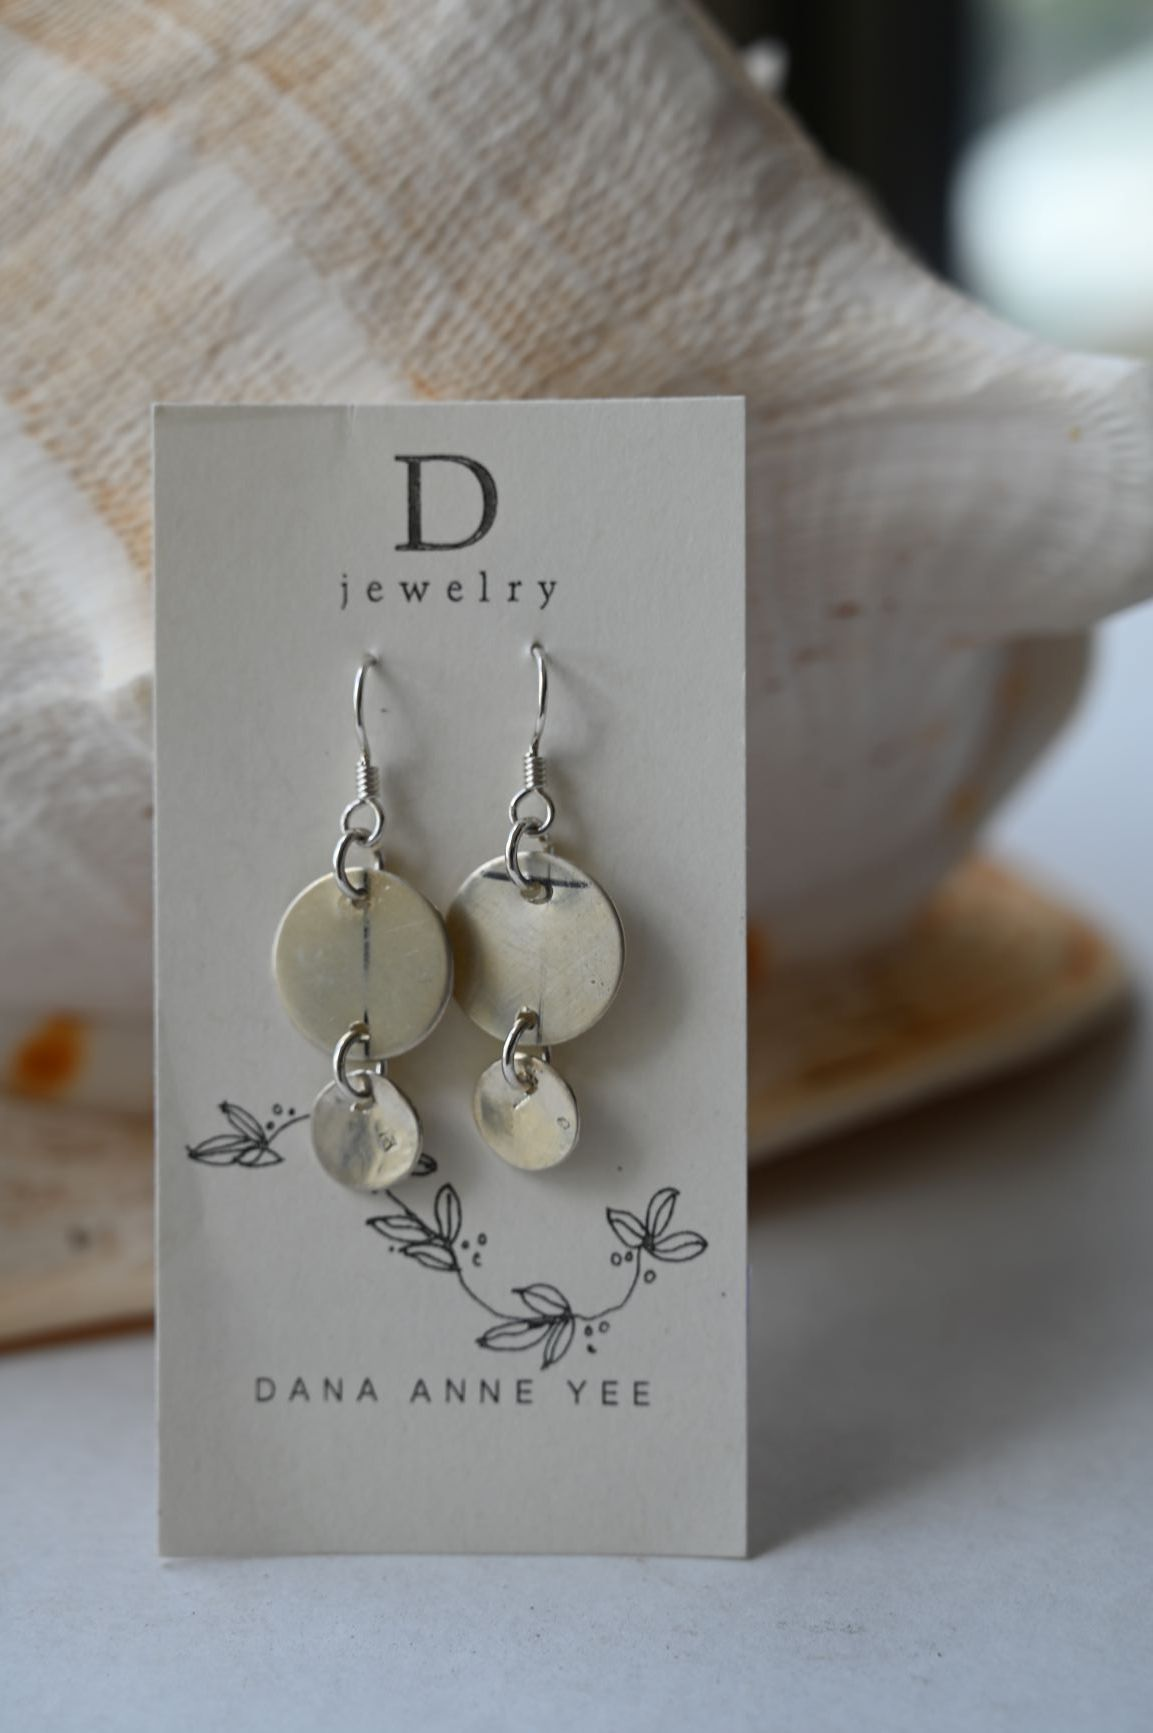 DAY-124 S - 1 Small Moon 1 Big Moon, Sterling Silver, Earrings